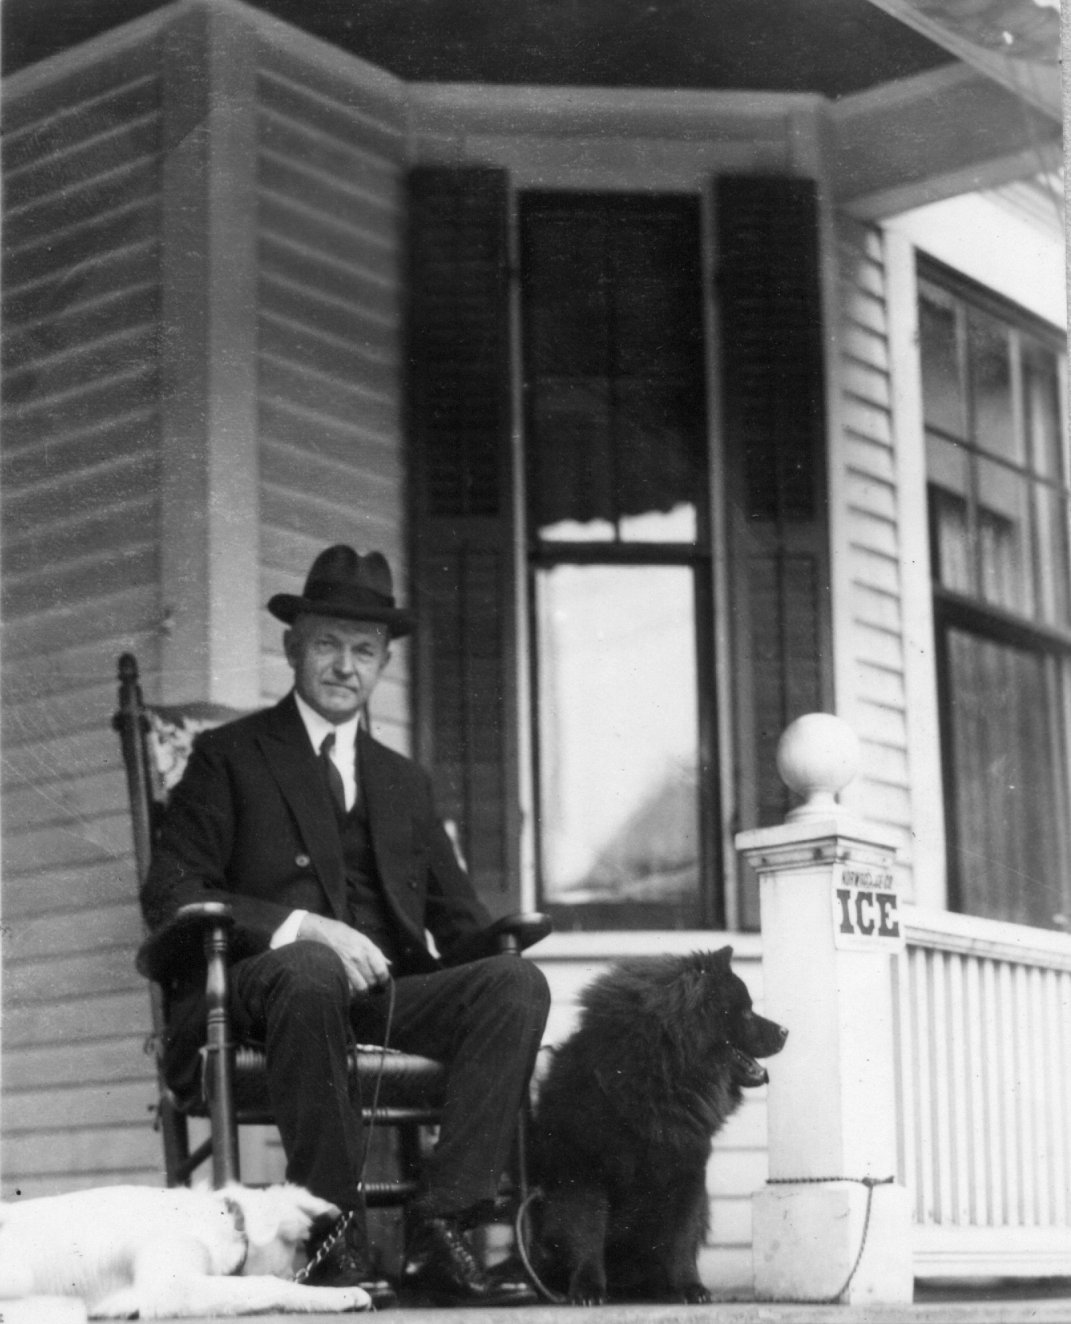 Coolidge, enjoying retirement from public life, with his dogs on the front porch of their first home, 21 Massasoit Street, Northampton, Massachusetts.